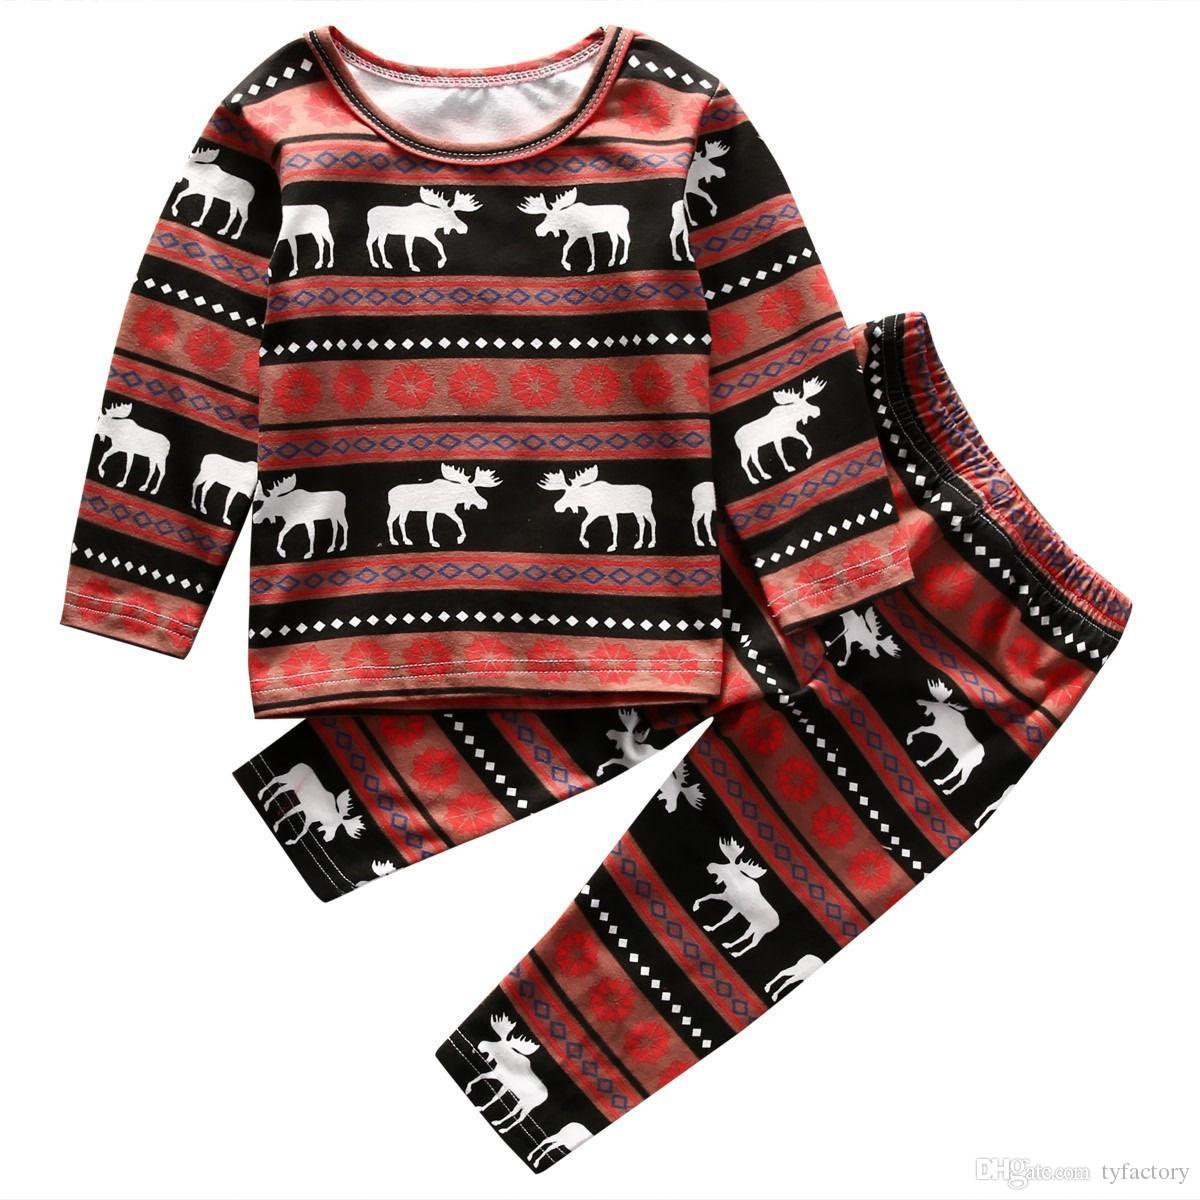 Christmas Family Matching Pajamas deer printed Kids fashion clothes baby girls boys Nightwear Cotton top+pant 2-piece outfits kid XMAS wear